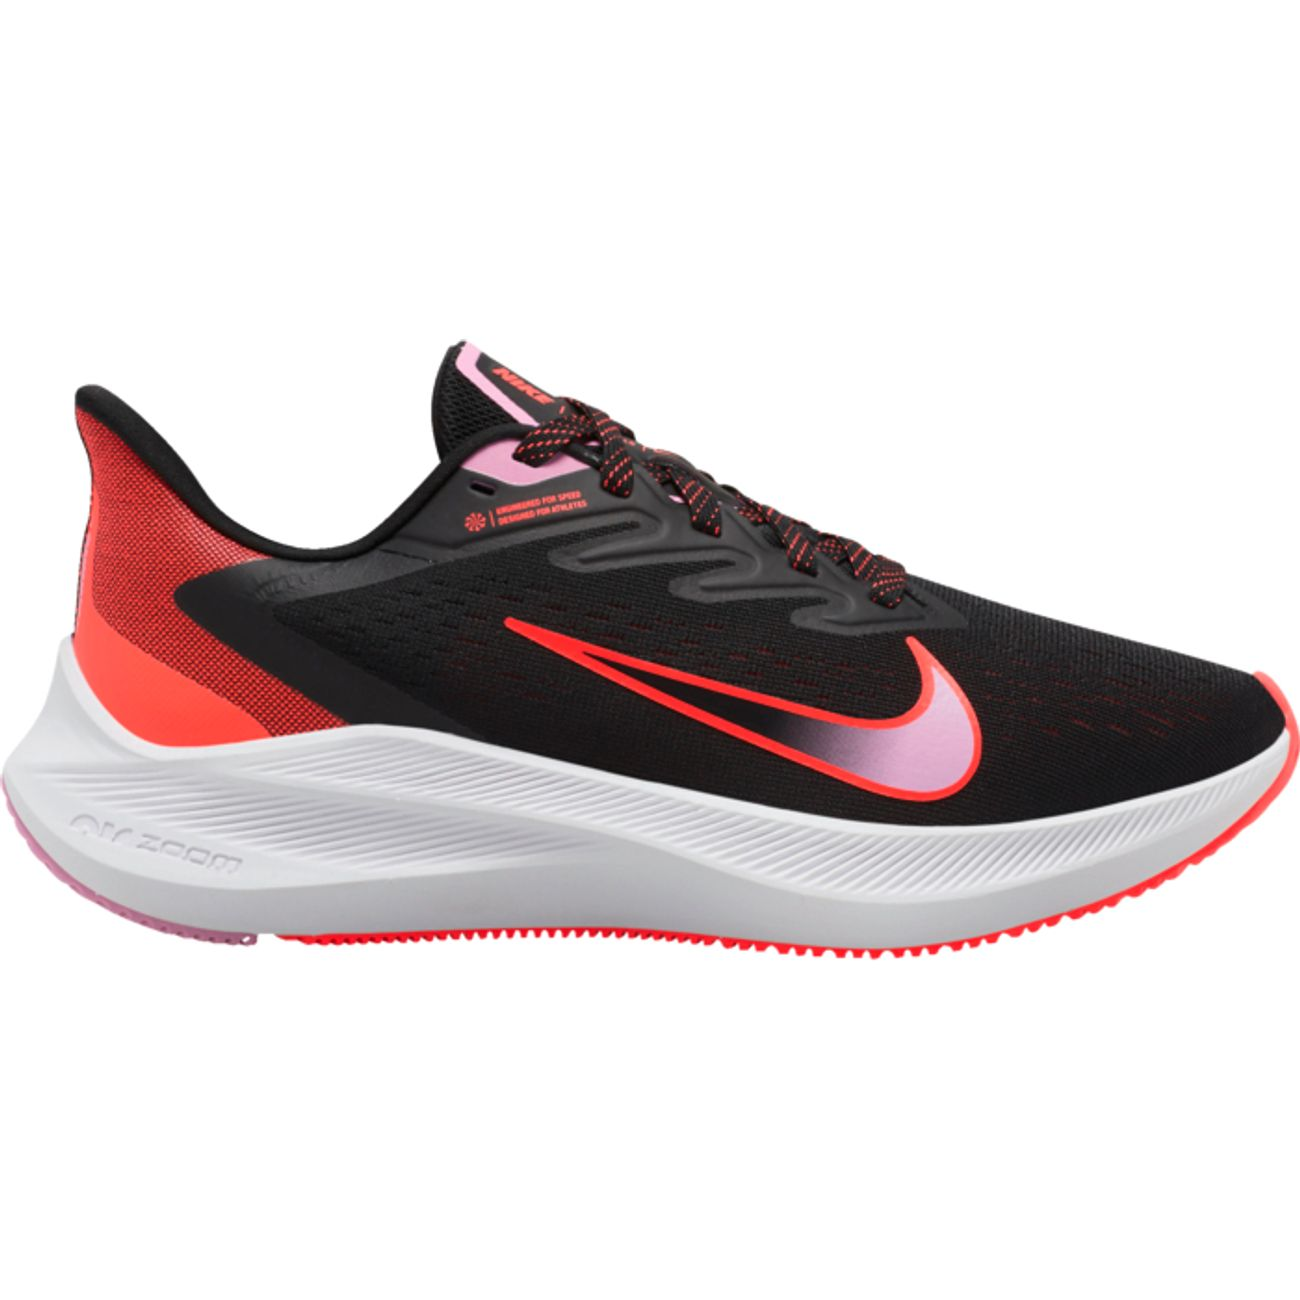 CHAUSSURES BASSES running femme NIKE WMNS NIKE ZOOM WINFLO 7